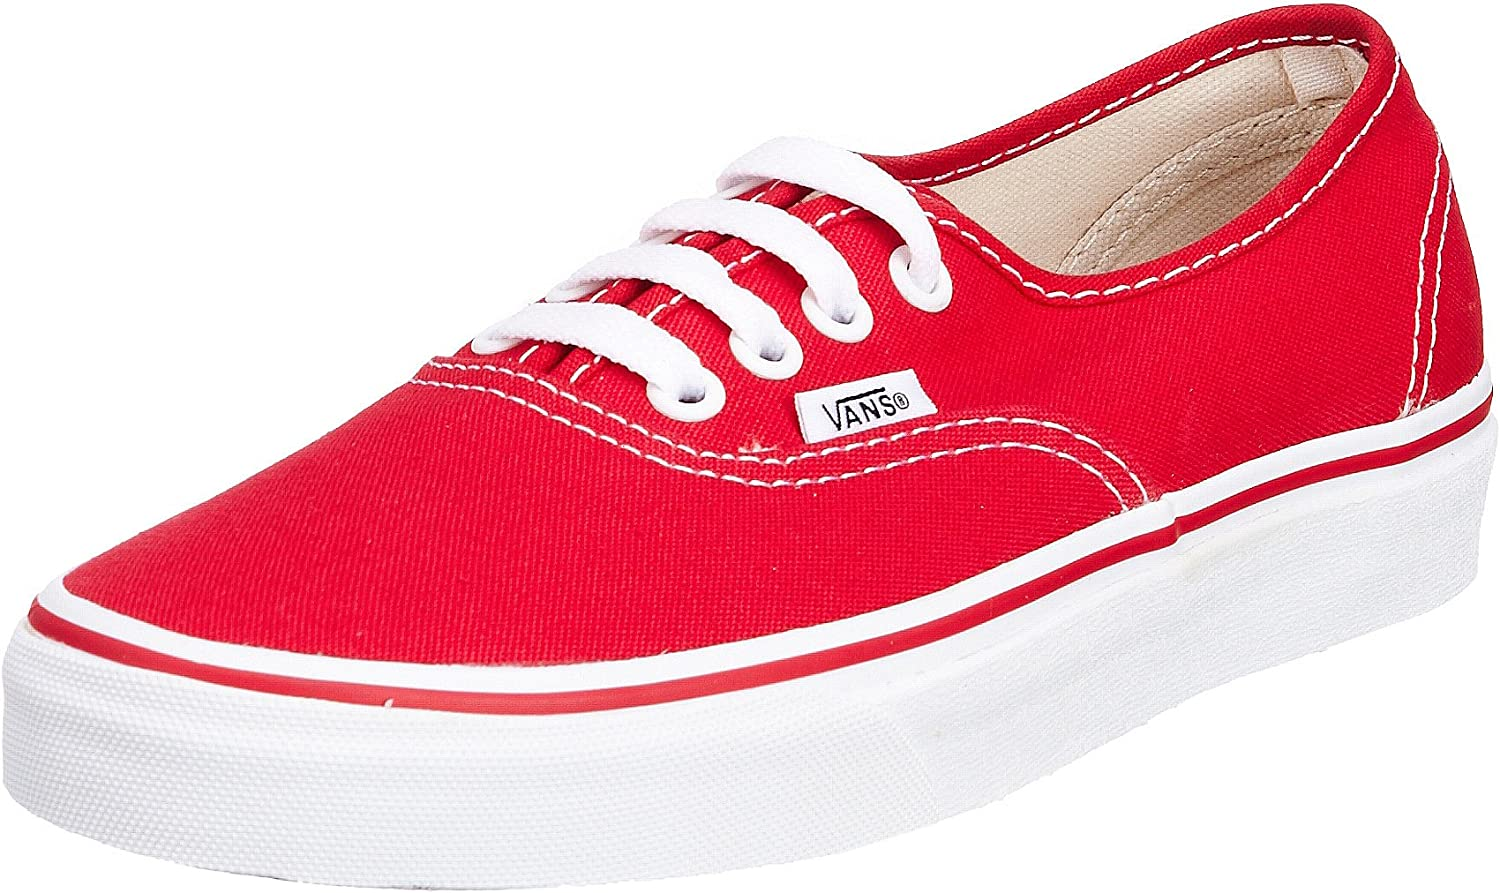 Vans Classic Red Canvas Authentic Skate